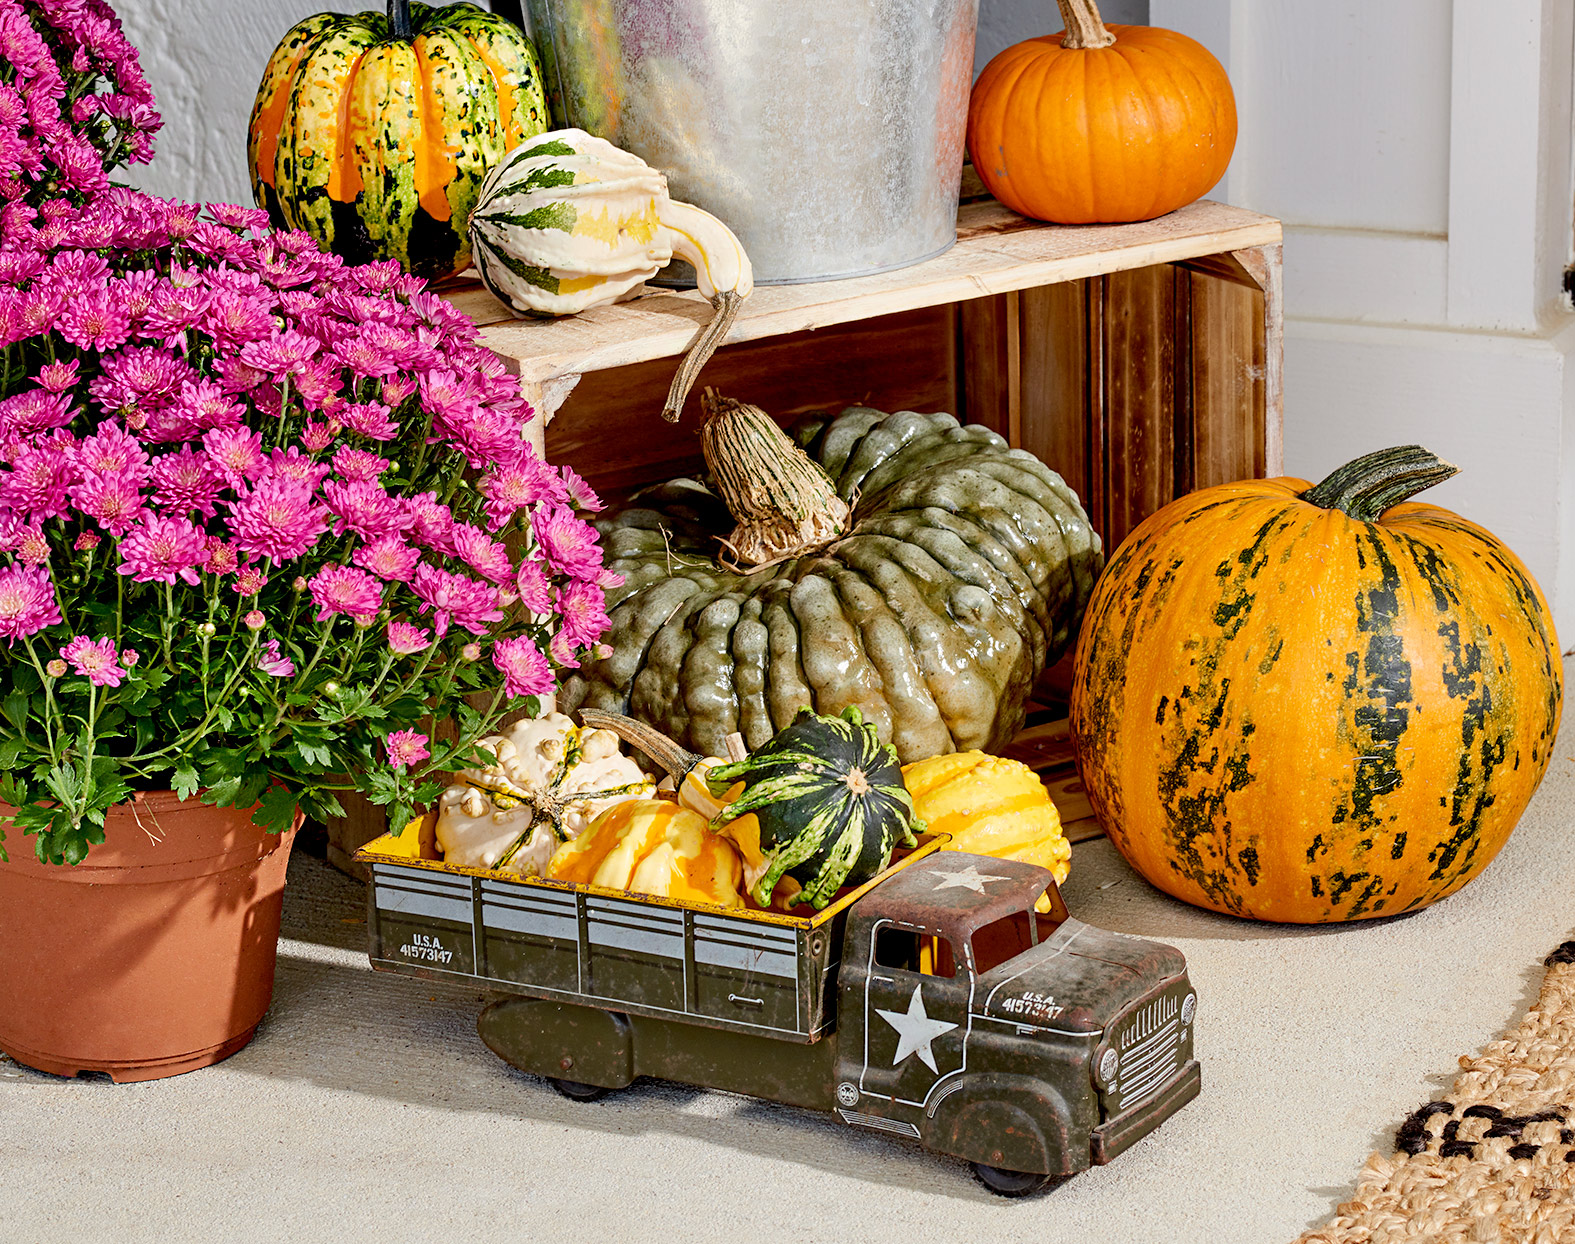 Toy truck filled with pumpkins and gourds